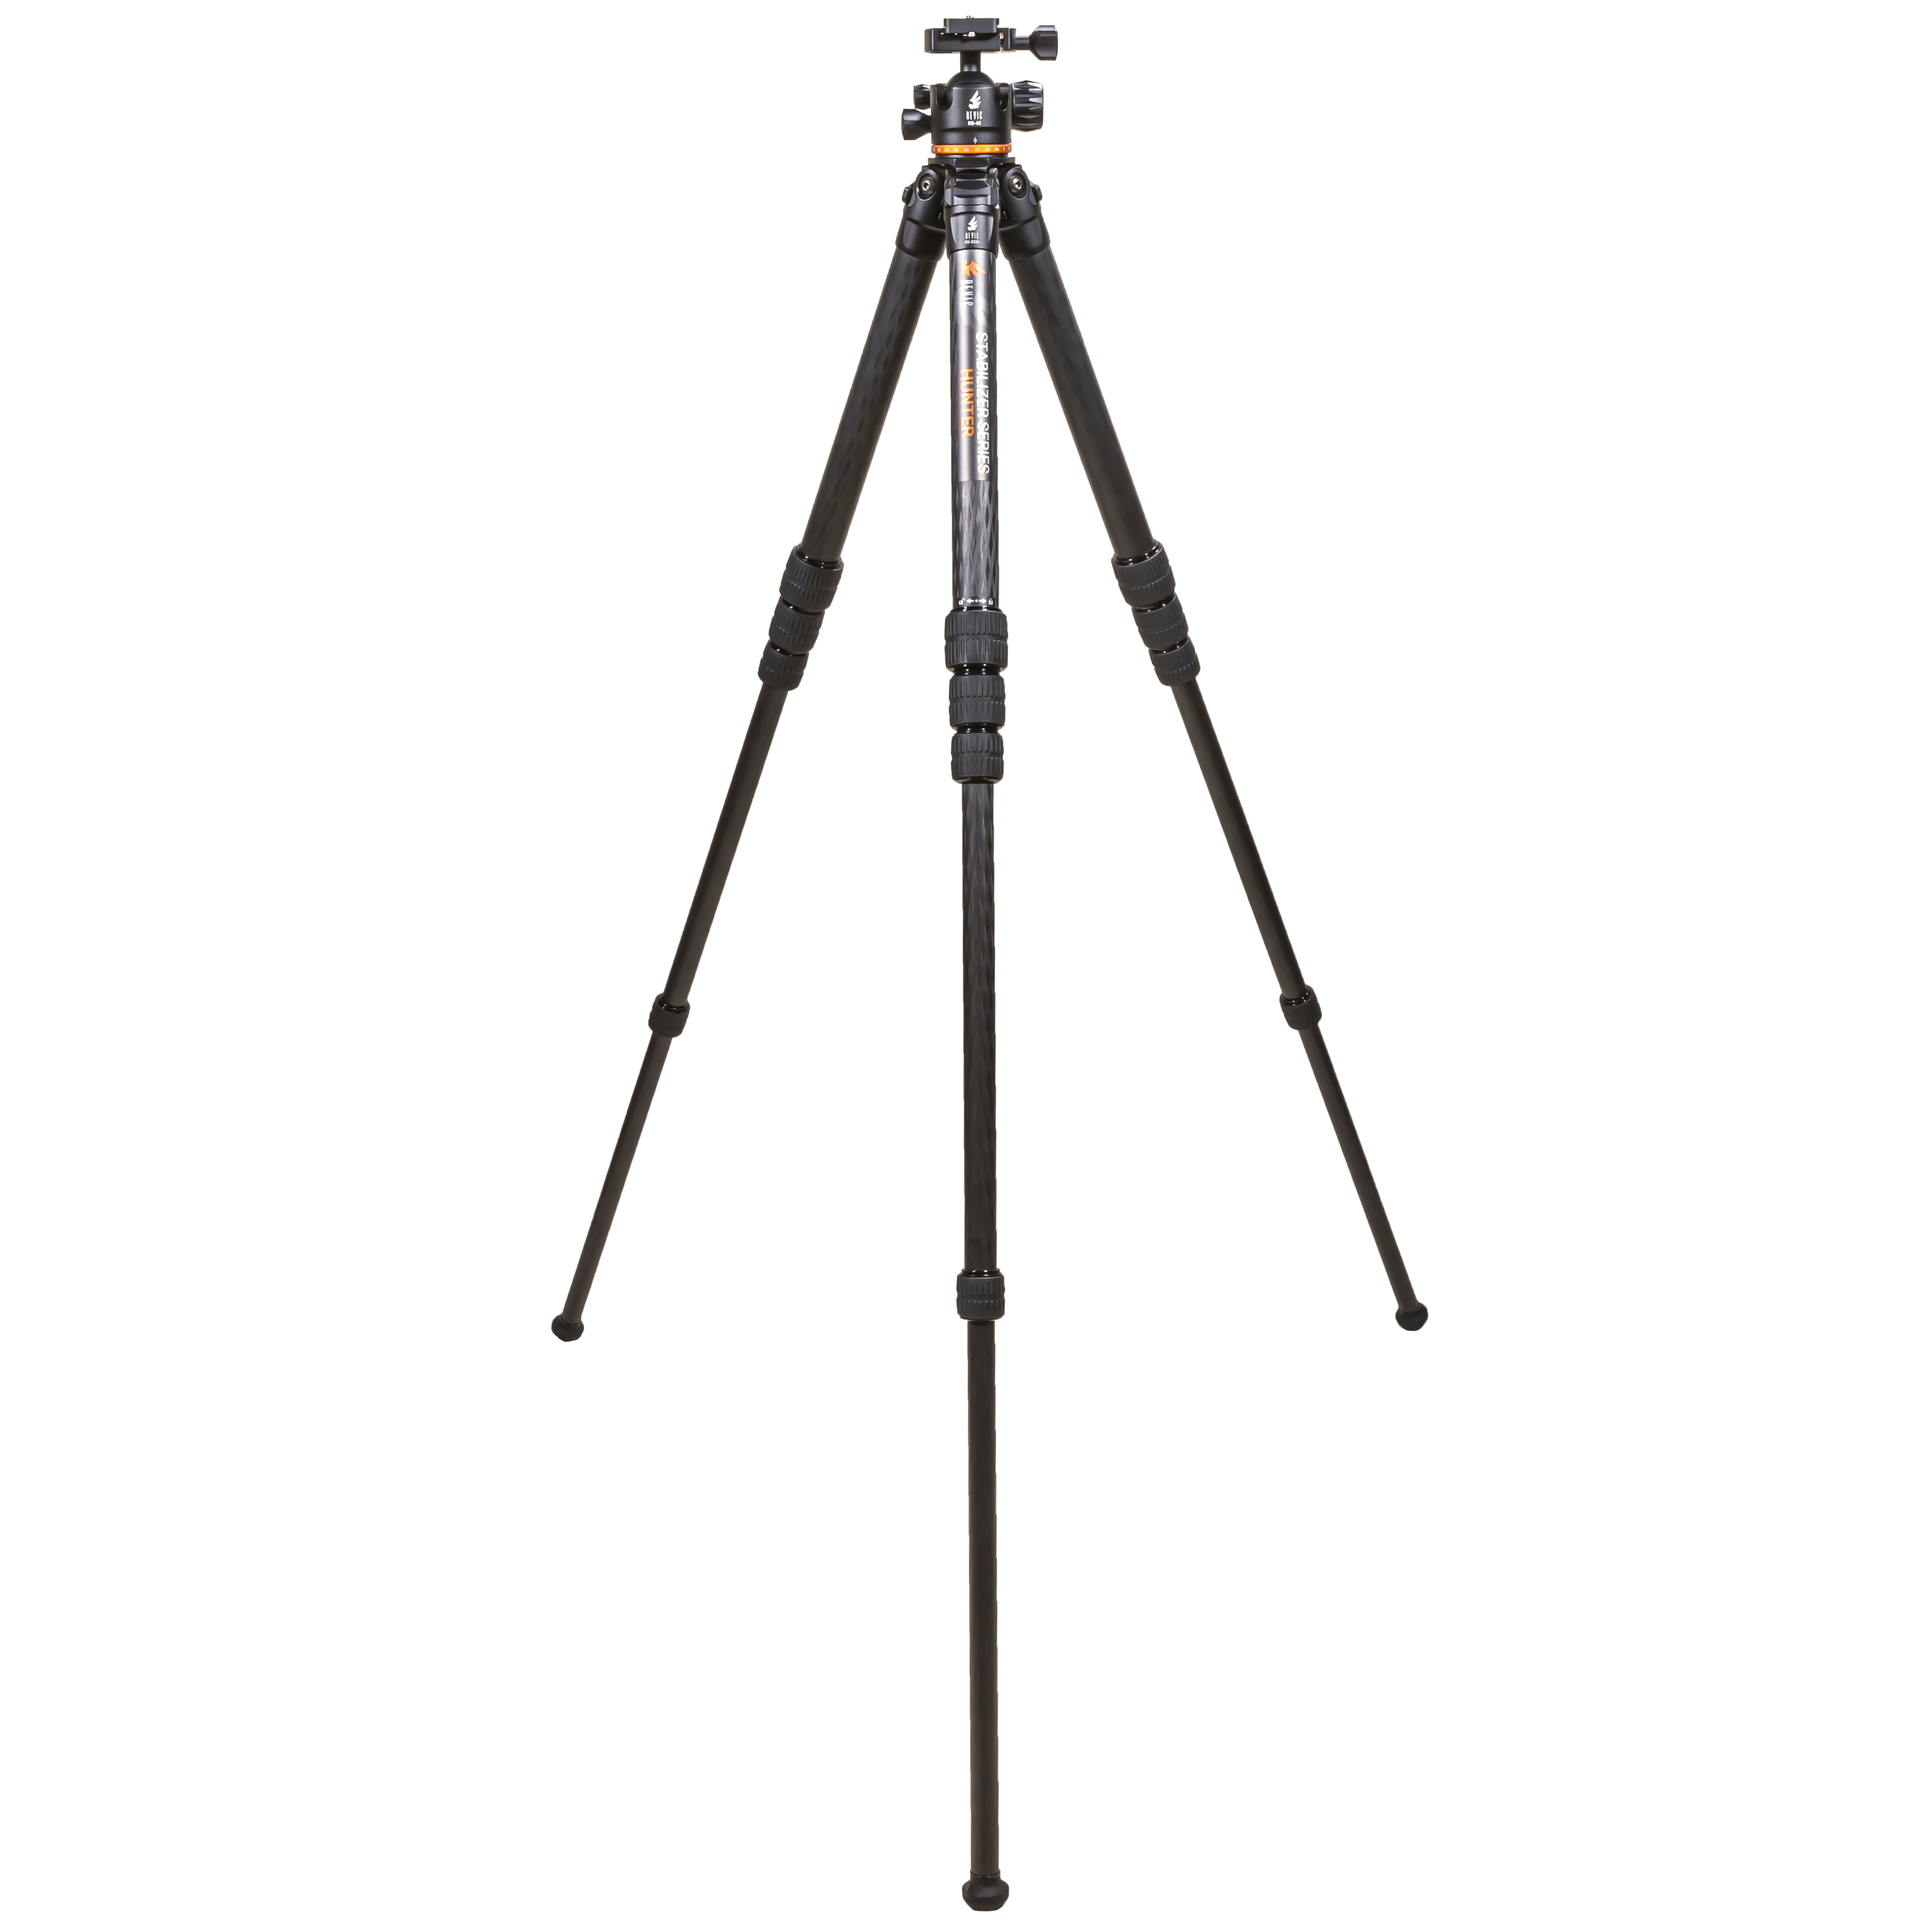 Revic Stabilizer Hunter Tripod Extended